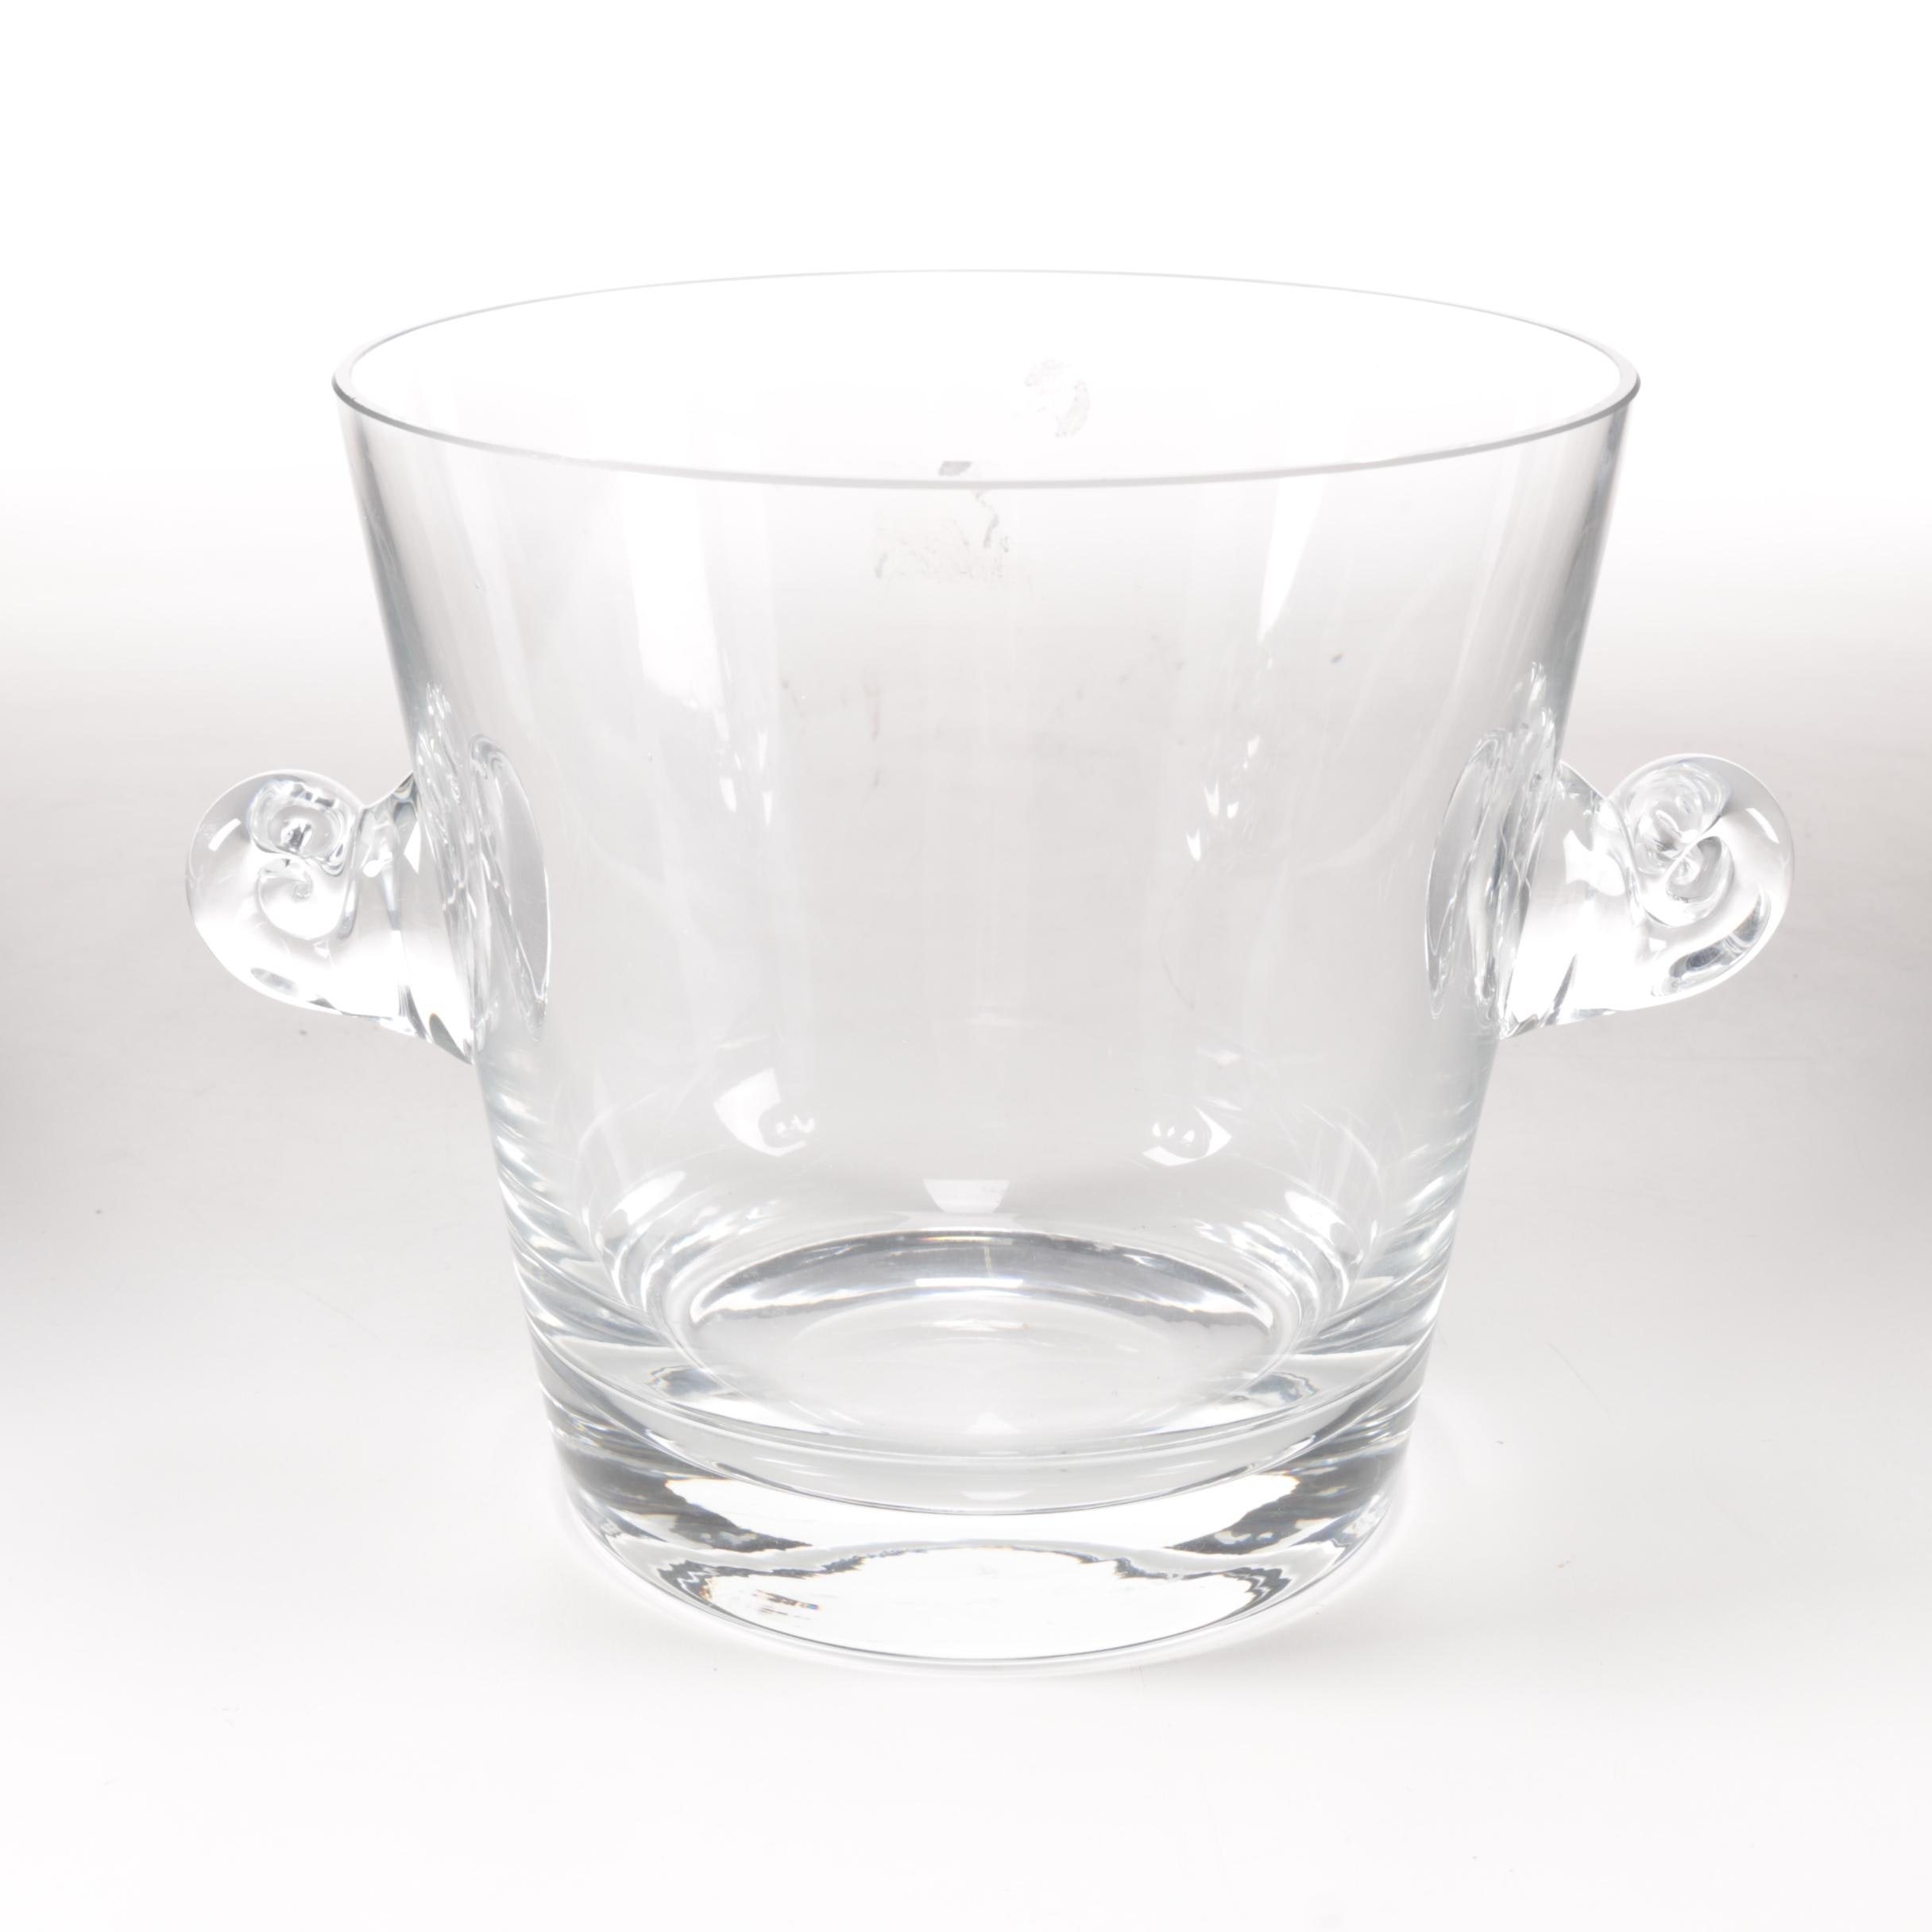 Tiffany & Co. Scroll Handled Crystal Ice Bucket